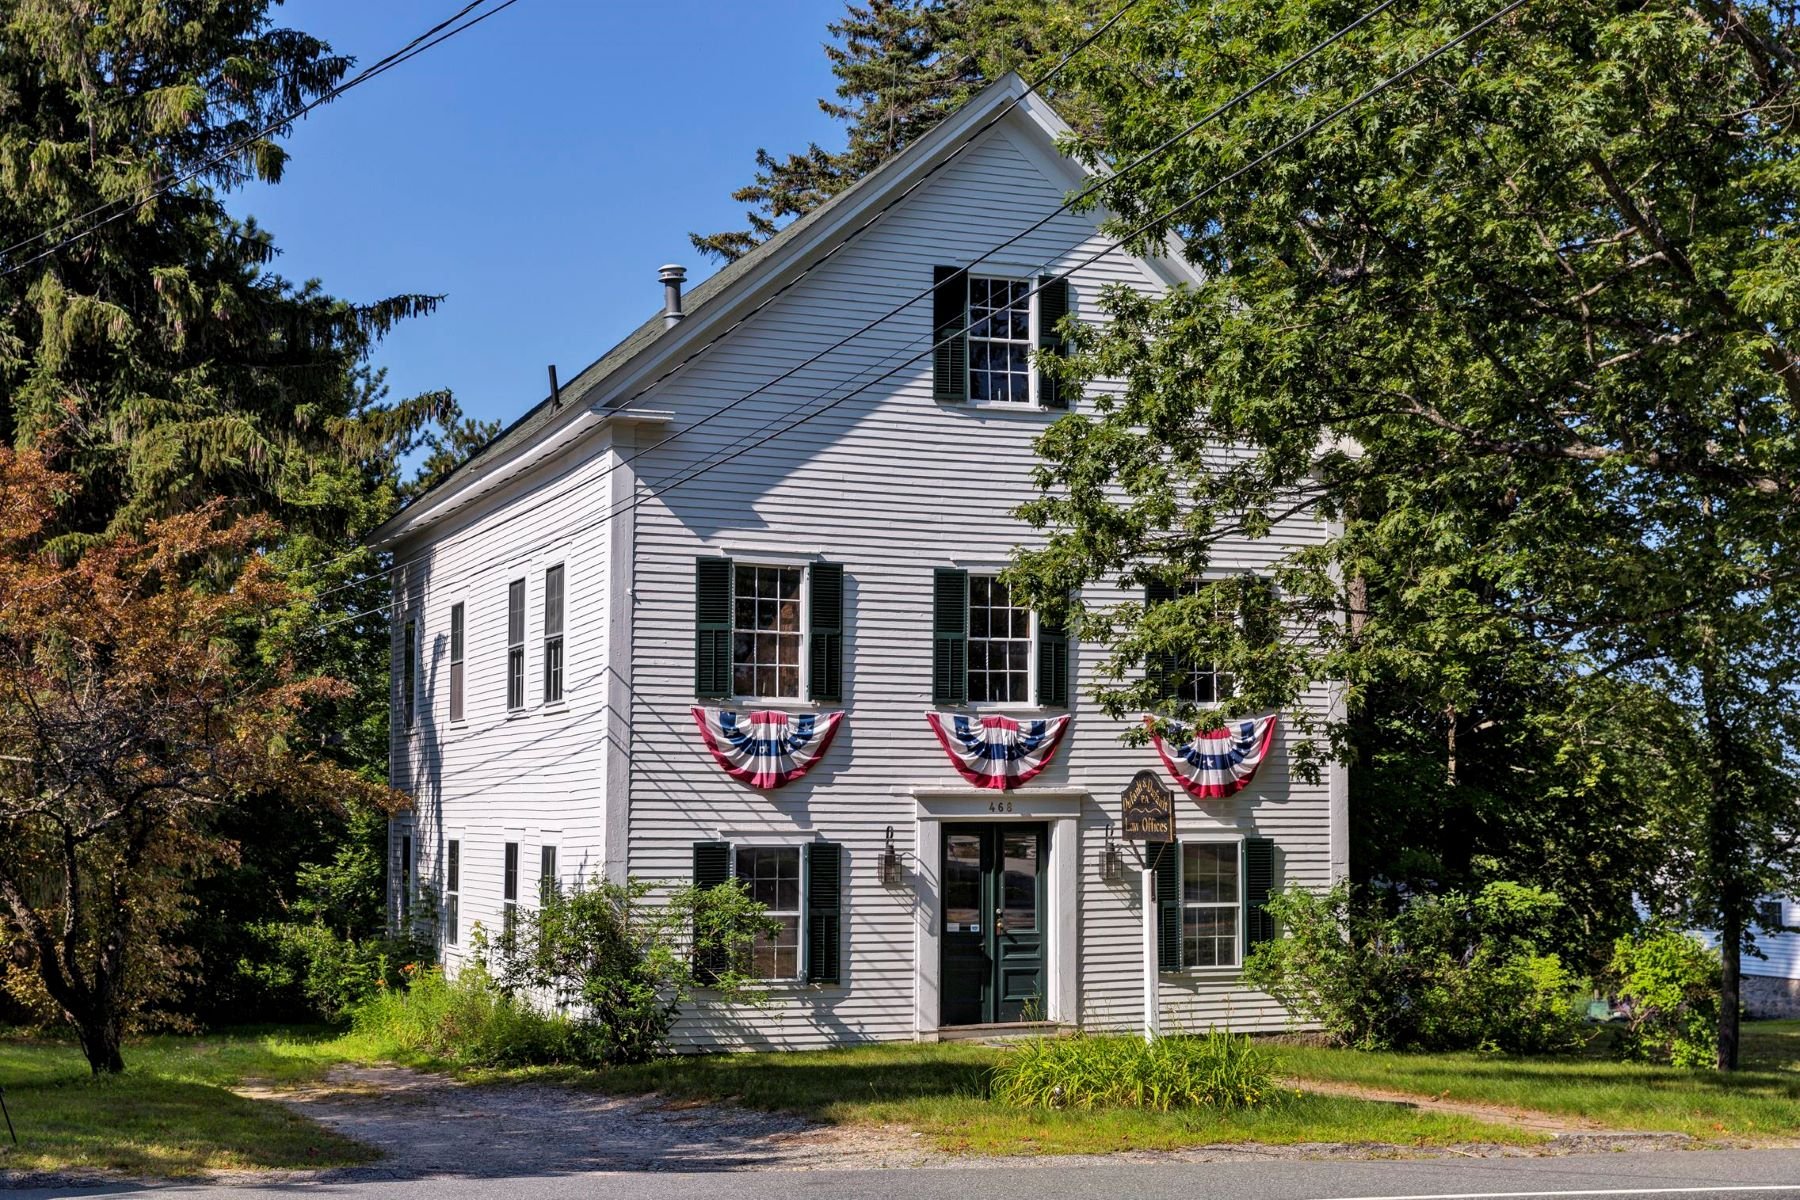 Villa per Vendita alle ore The Historic Grange 468 Main, New London, New Hampshire, 03257 Stati Uniti